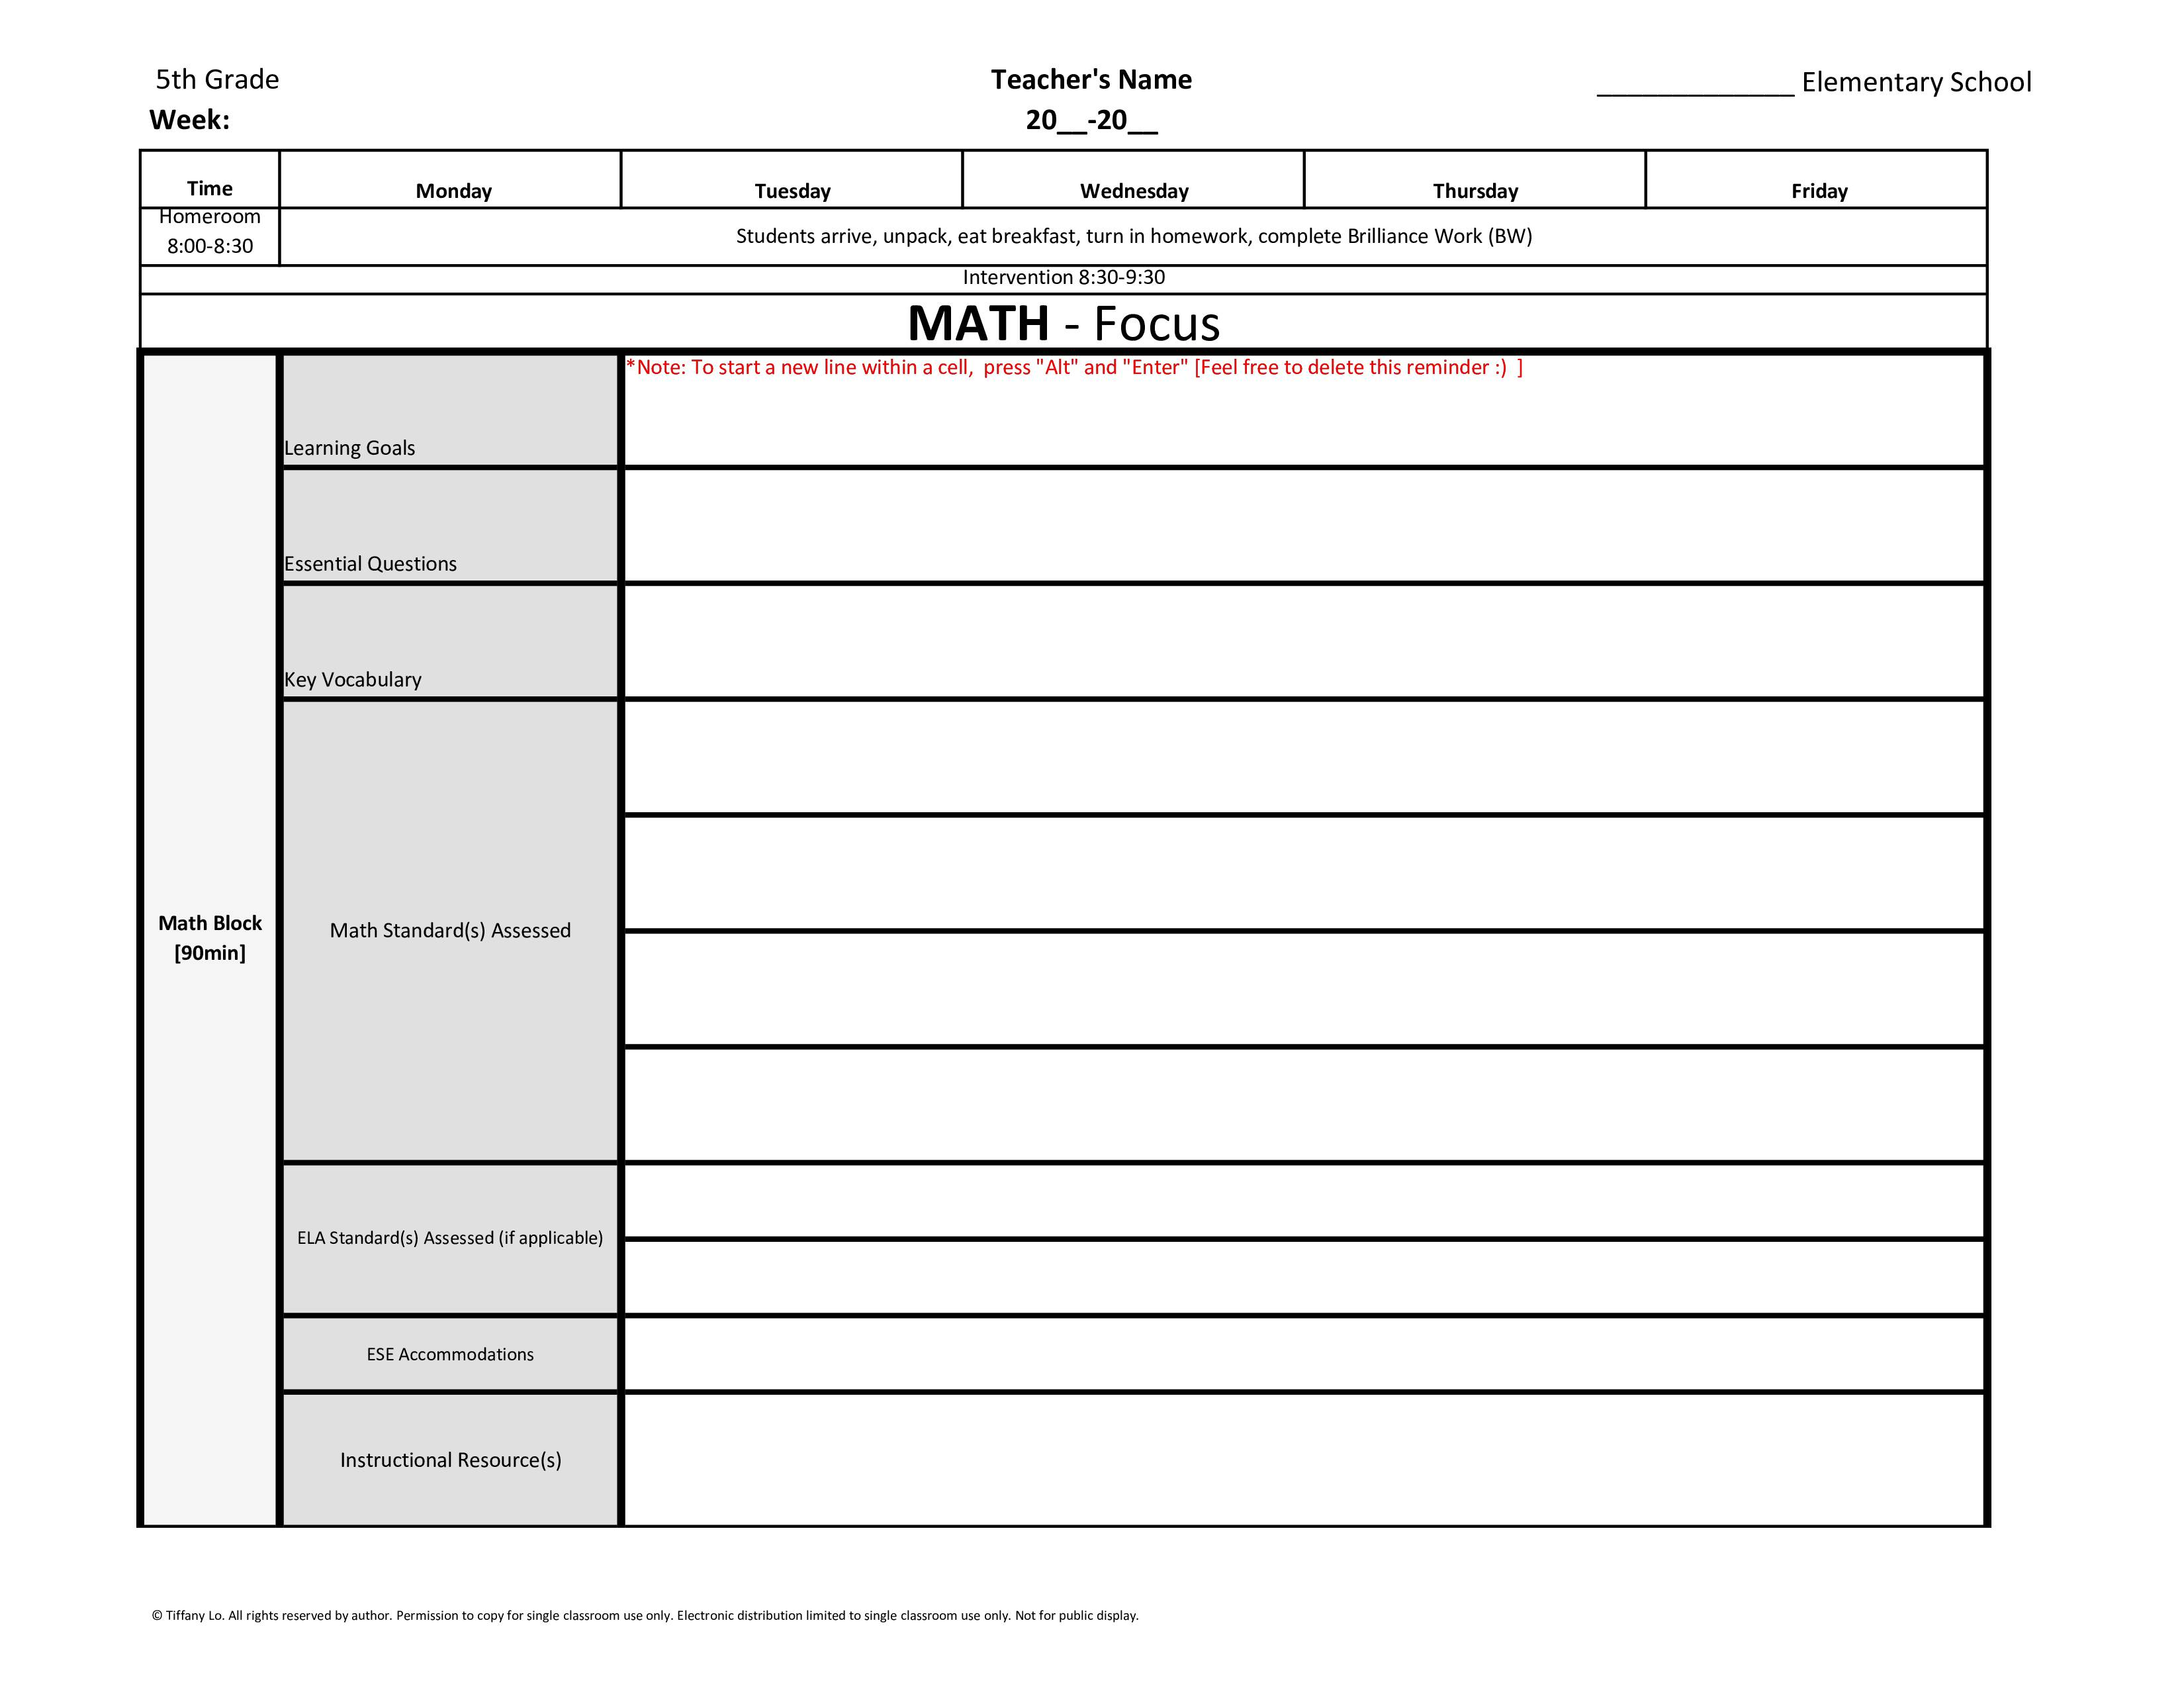 5th Fifth Grade Common Core Weekly Lesson Plan Template W